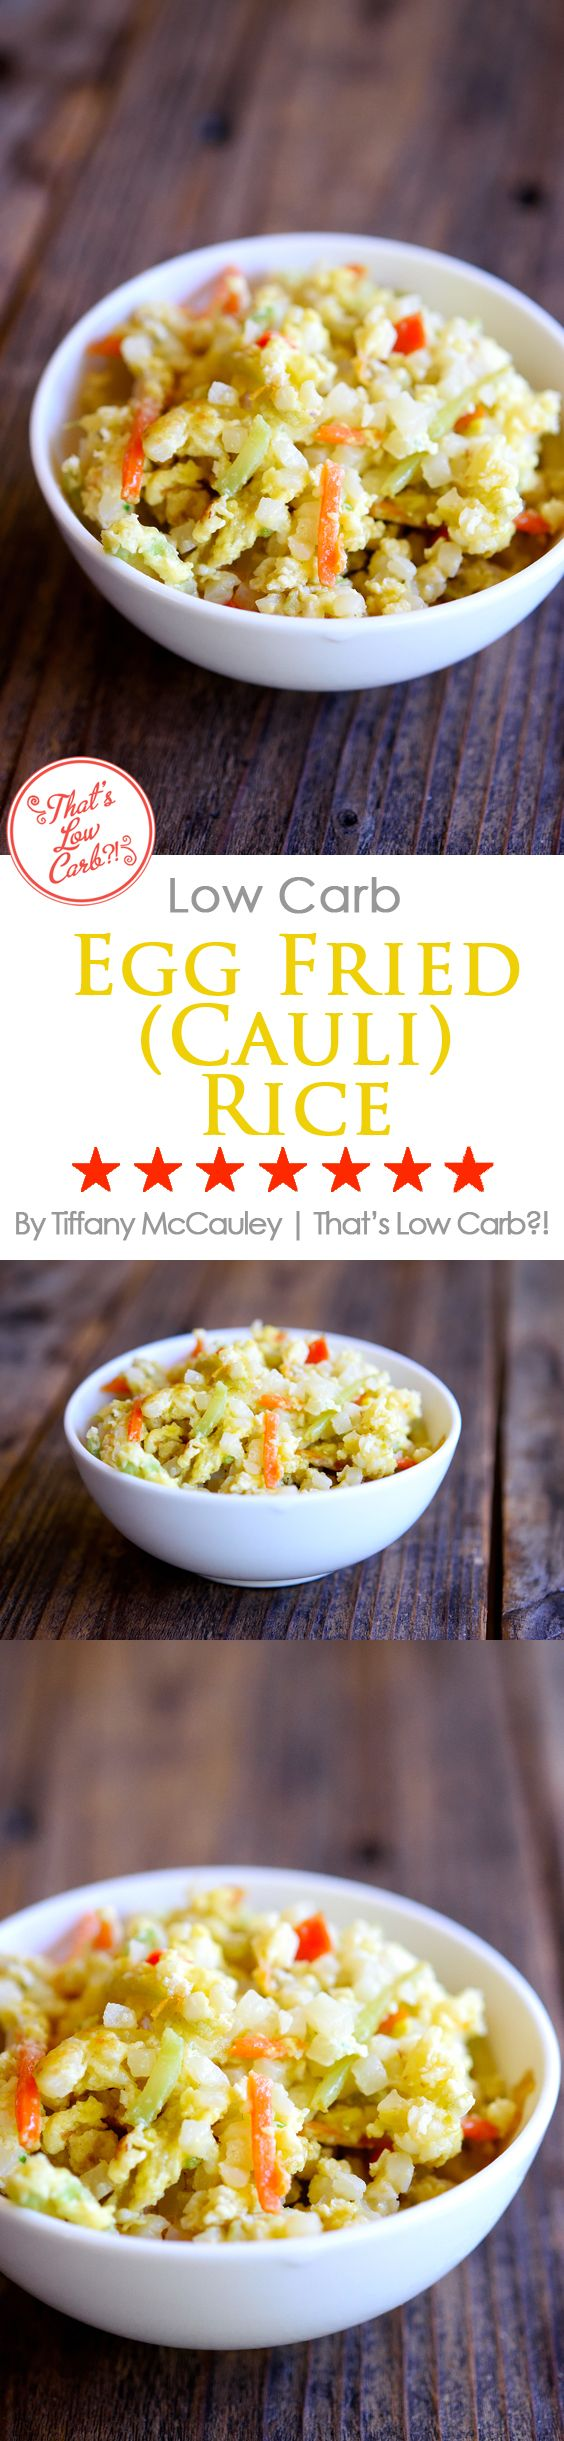 Low Carb Recipes | Egg Fried Rice Recipe | Egg Fried Cauliflower Rice Recipe | Low Carb Asian Food Recipes ~ https://www.thatslowcarb.com